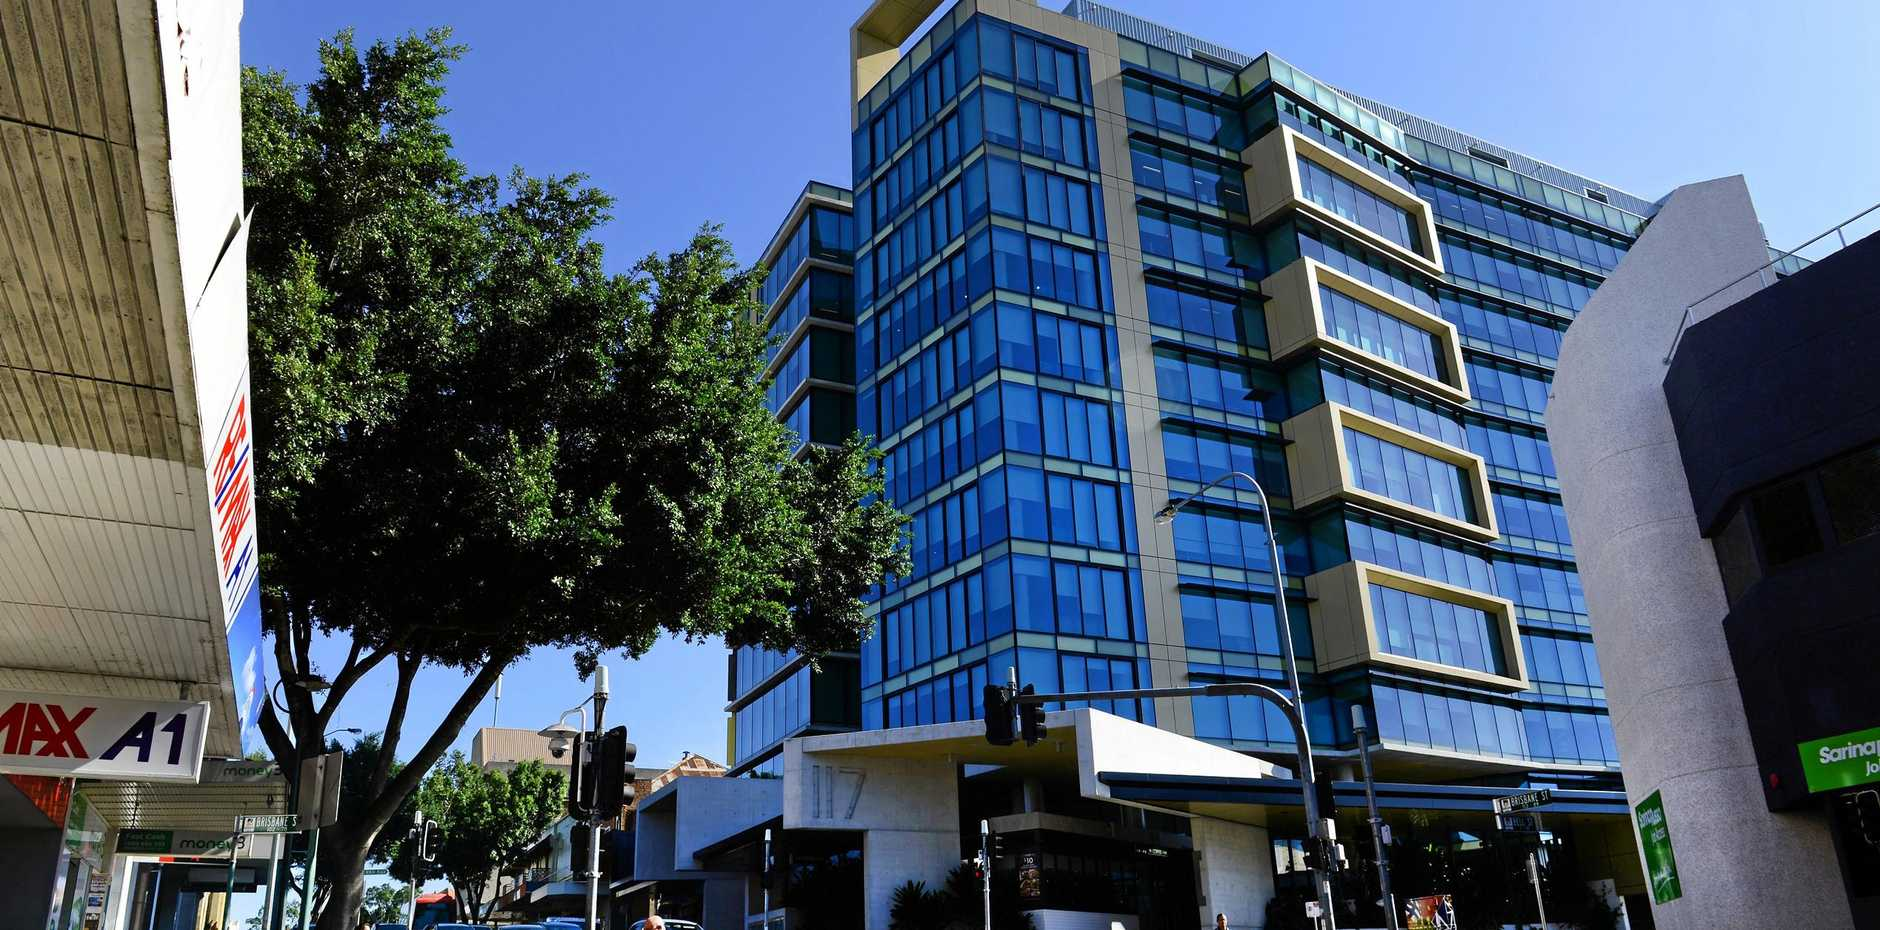 PRESSURE: The ICON Tower, opened in 2013, is full of State Government departments and Seqwater.